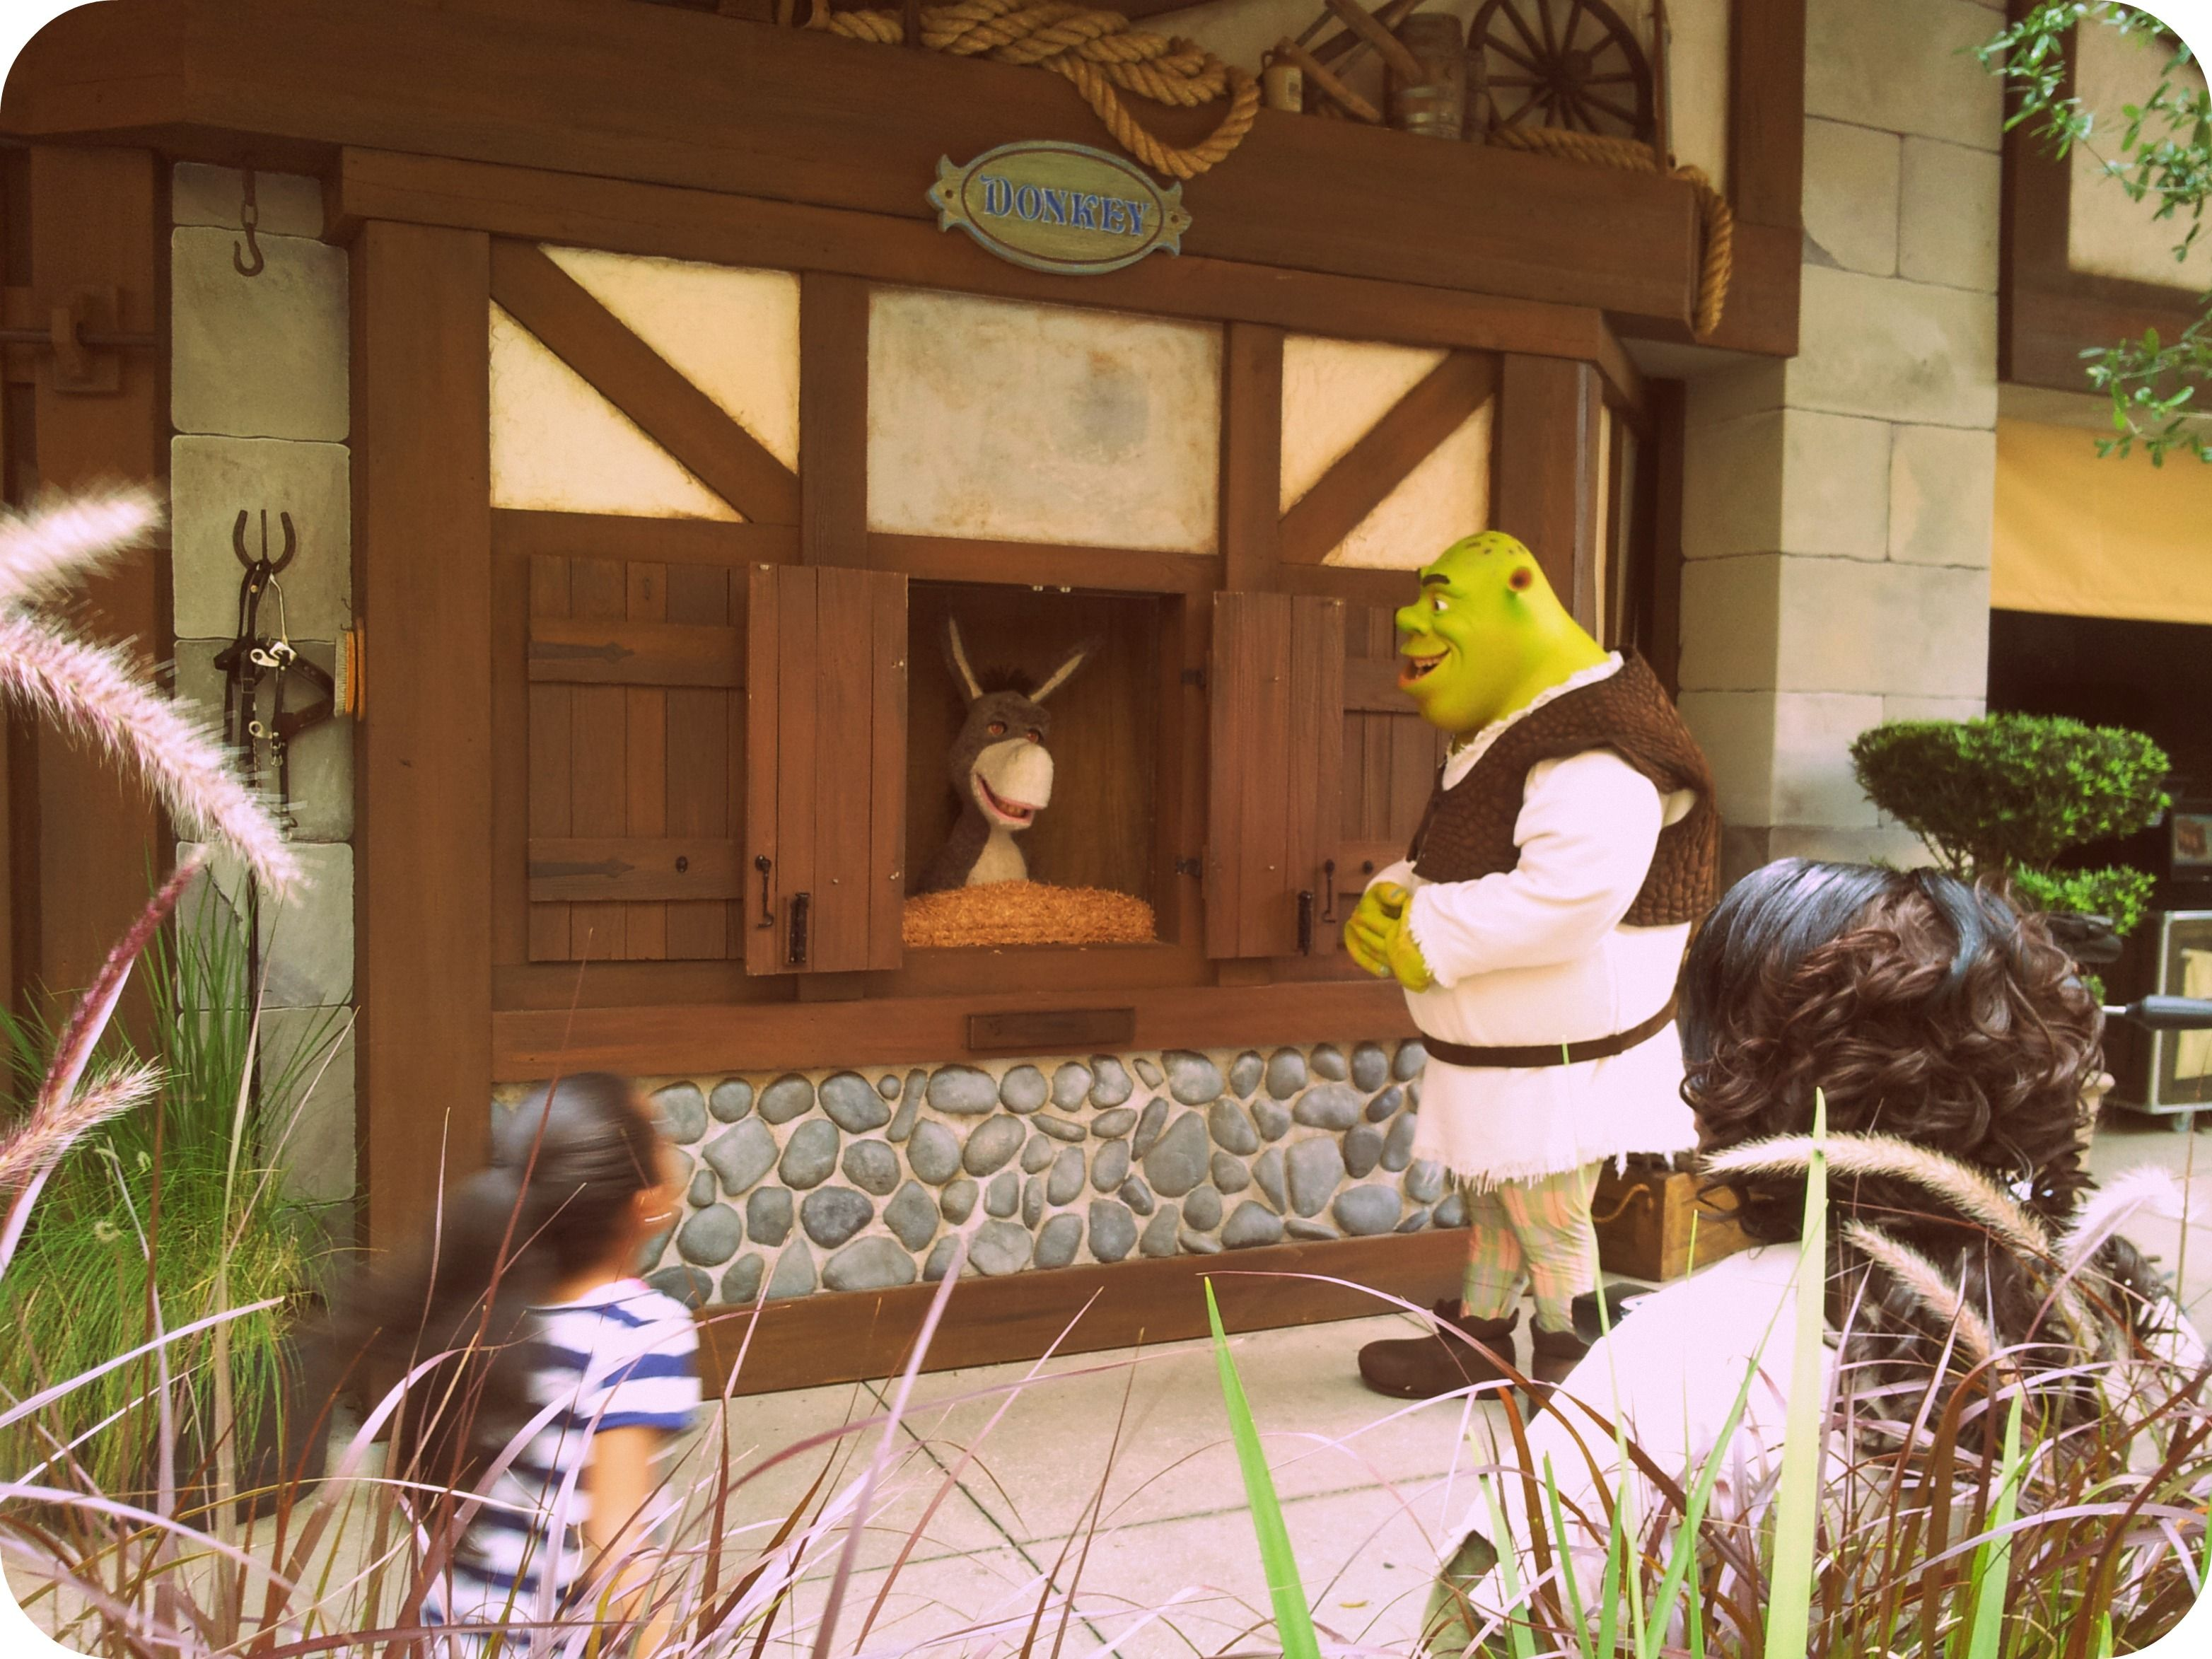 Meet and Greet opportunity with Donkey and Shrek via the Shrek ride ...